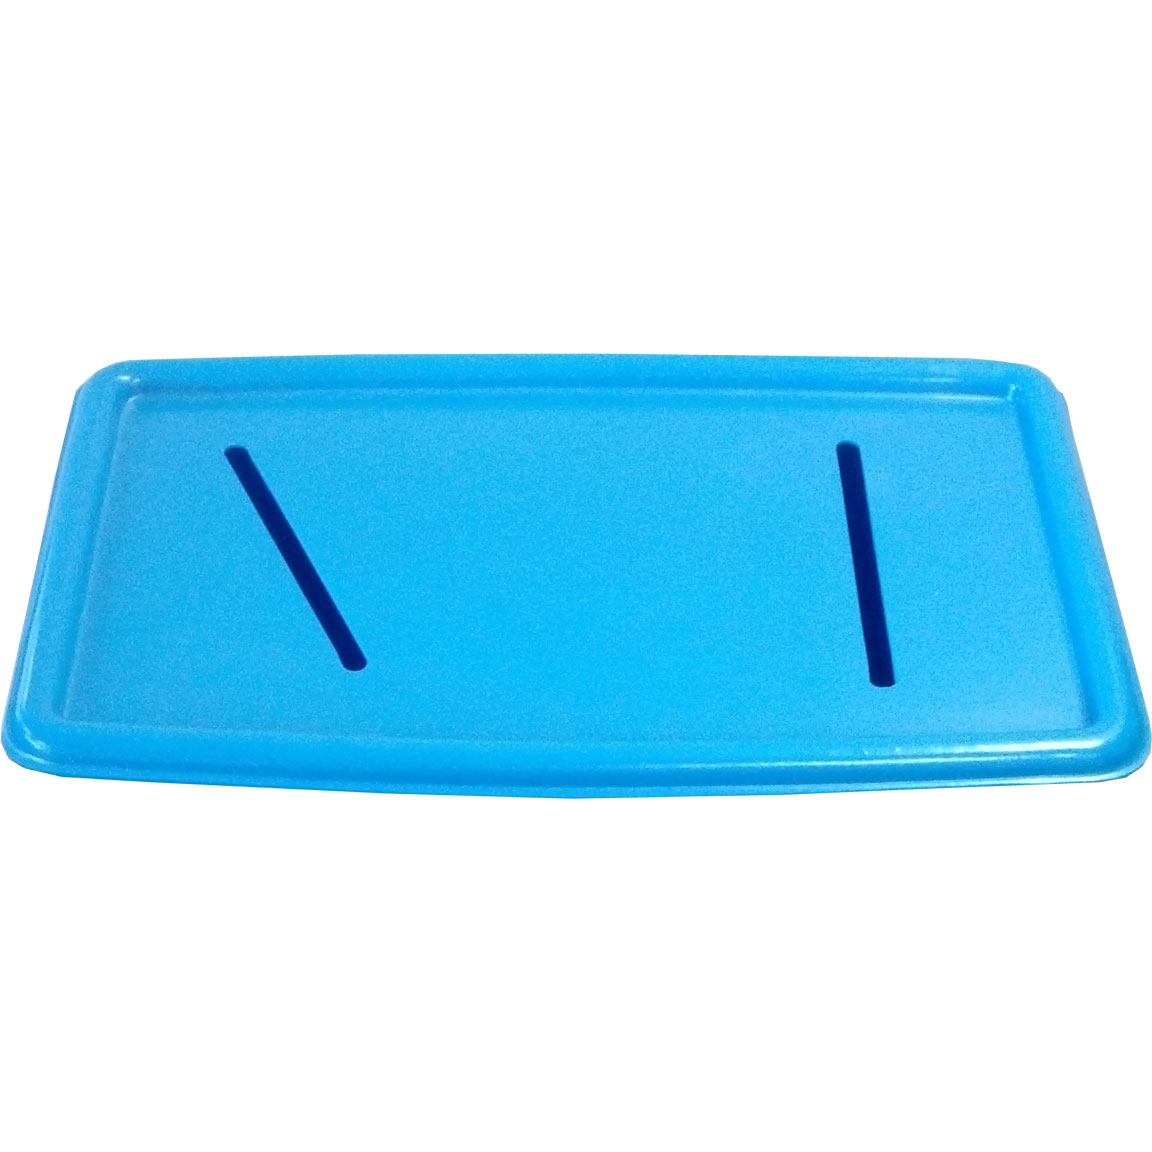 RC-32L - RC Series Thirty-Two Gallon Mobile Recycling Container Lid - 25 x 15.5 x 1